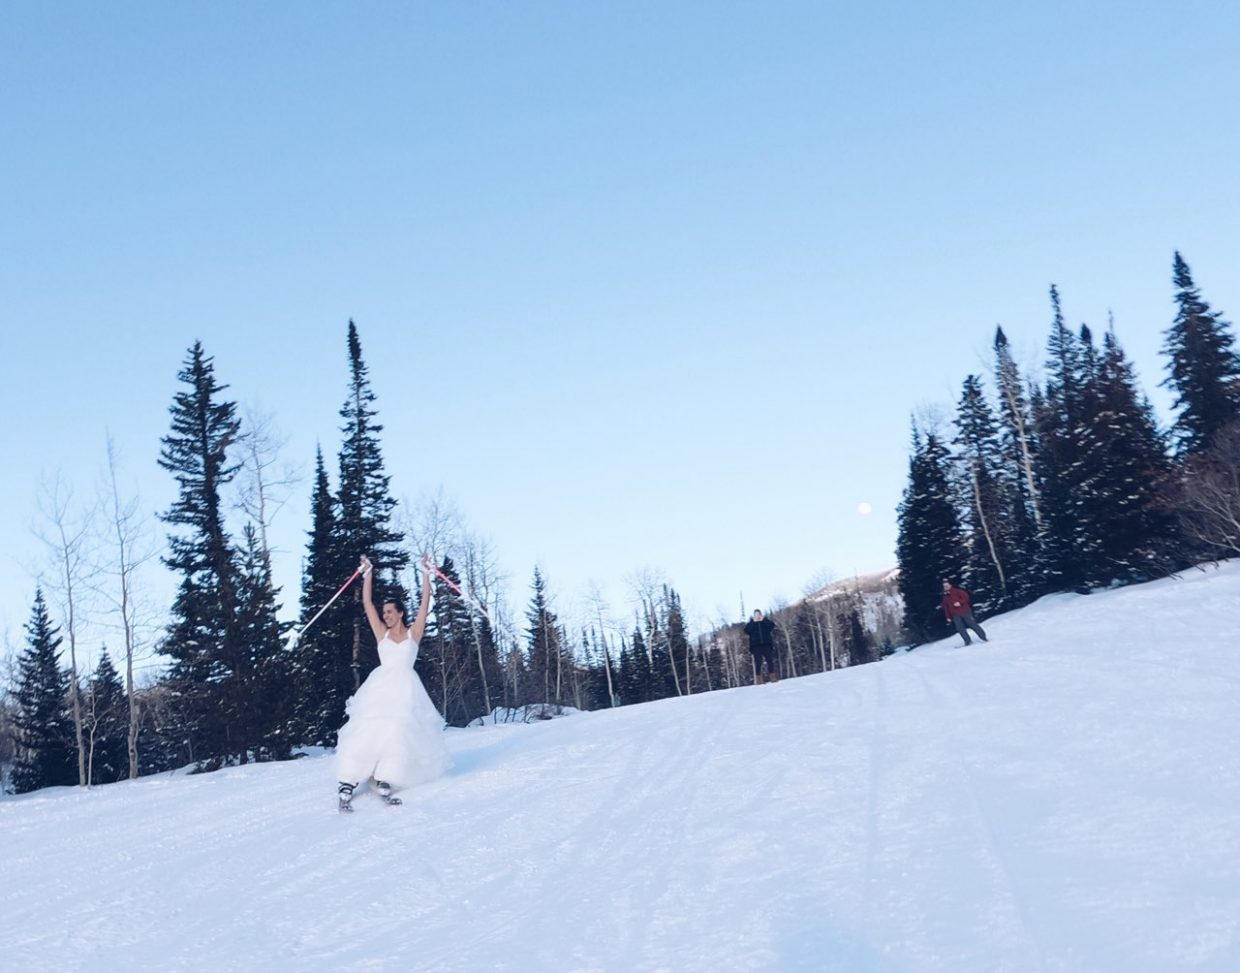 Love was found on the mountain this Valentine's weekend for Becky and Andrew Hill from Fort Collins, who were married last summer. Becky is getting the most out of her wedding dress and decided 22 degree temps would not stop her from skiing down the slopes.